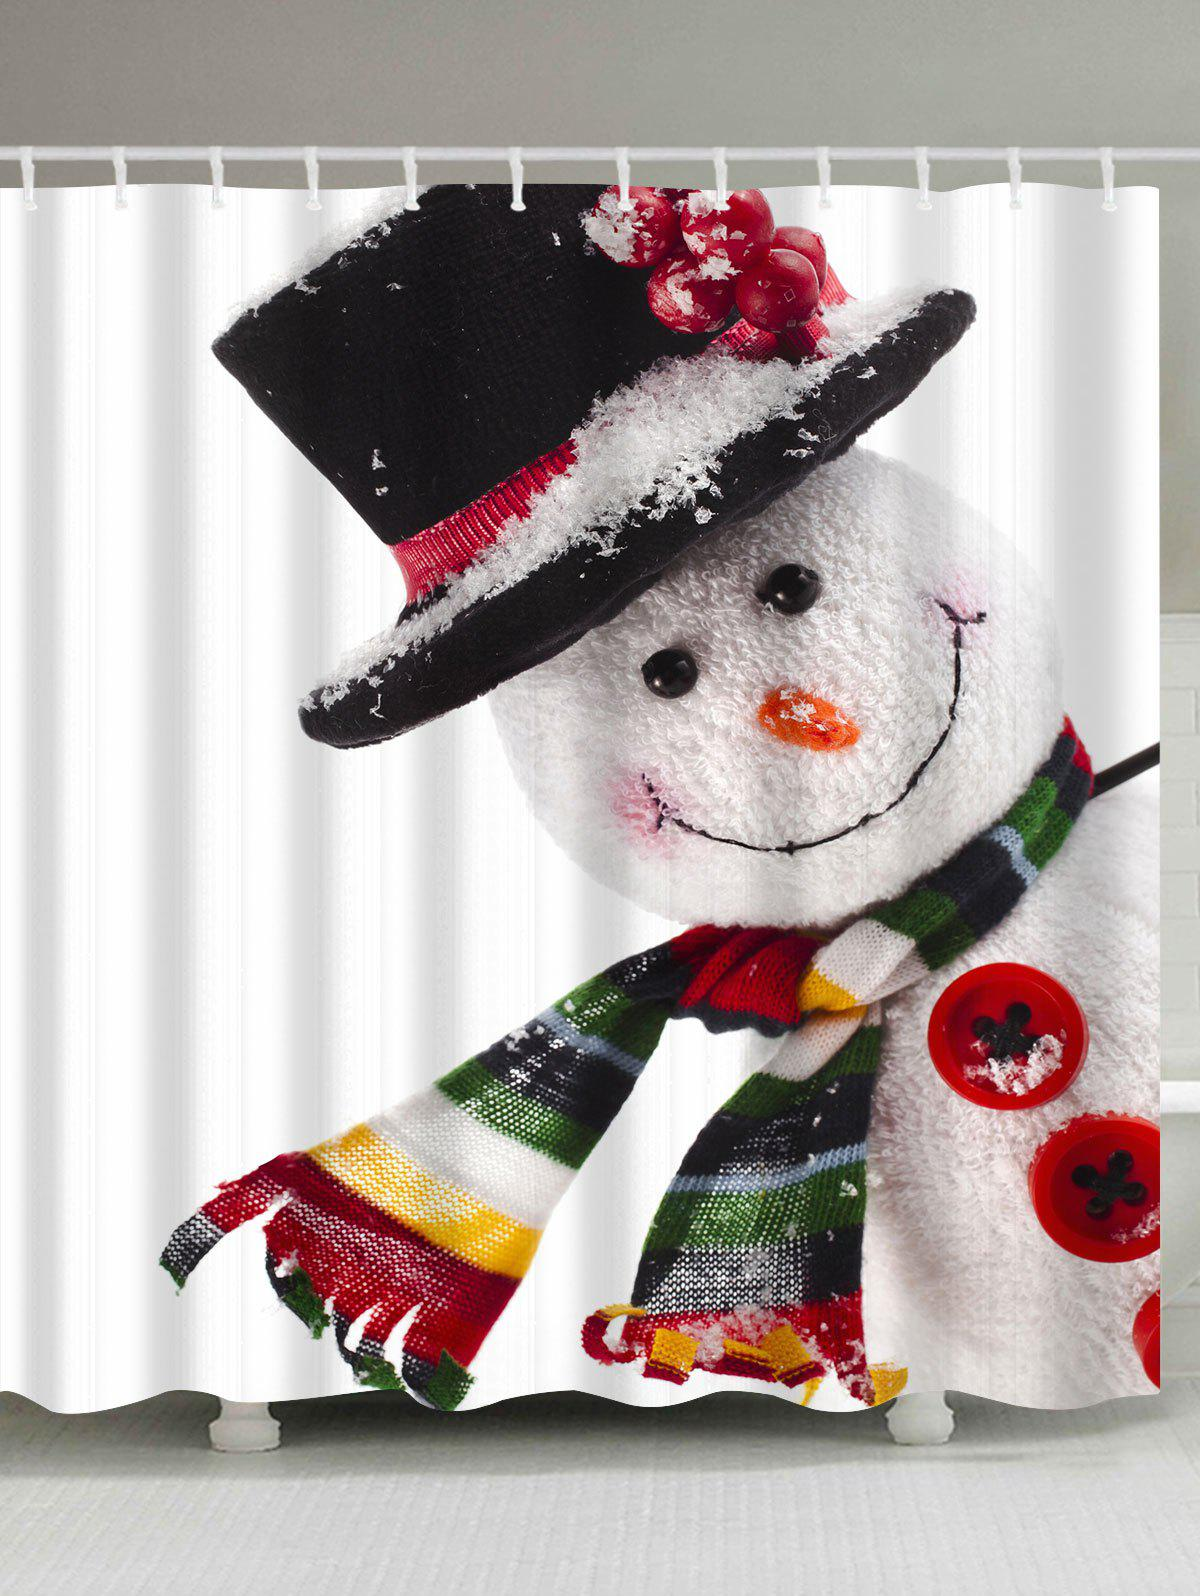 Polyester Waterproof Snowman Christmas Bath CurtainHOME<br><br>Size: W71 INCH * L71 INCH; Color: WHITE; Products Type: Shower Curtains; Materials: Polyester; Pattern: Snowman; Style: Festival; Number of Hook Holes: W59 inch*L71 inch: 10; W71 inch*L71 inch: 12; W71 inch*L79 inch: 12; Package Contents: 1 x Shower Curtain 1 x Hooks (Set);